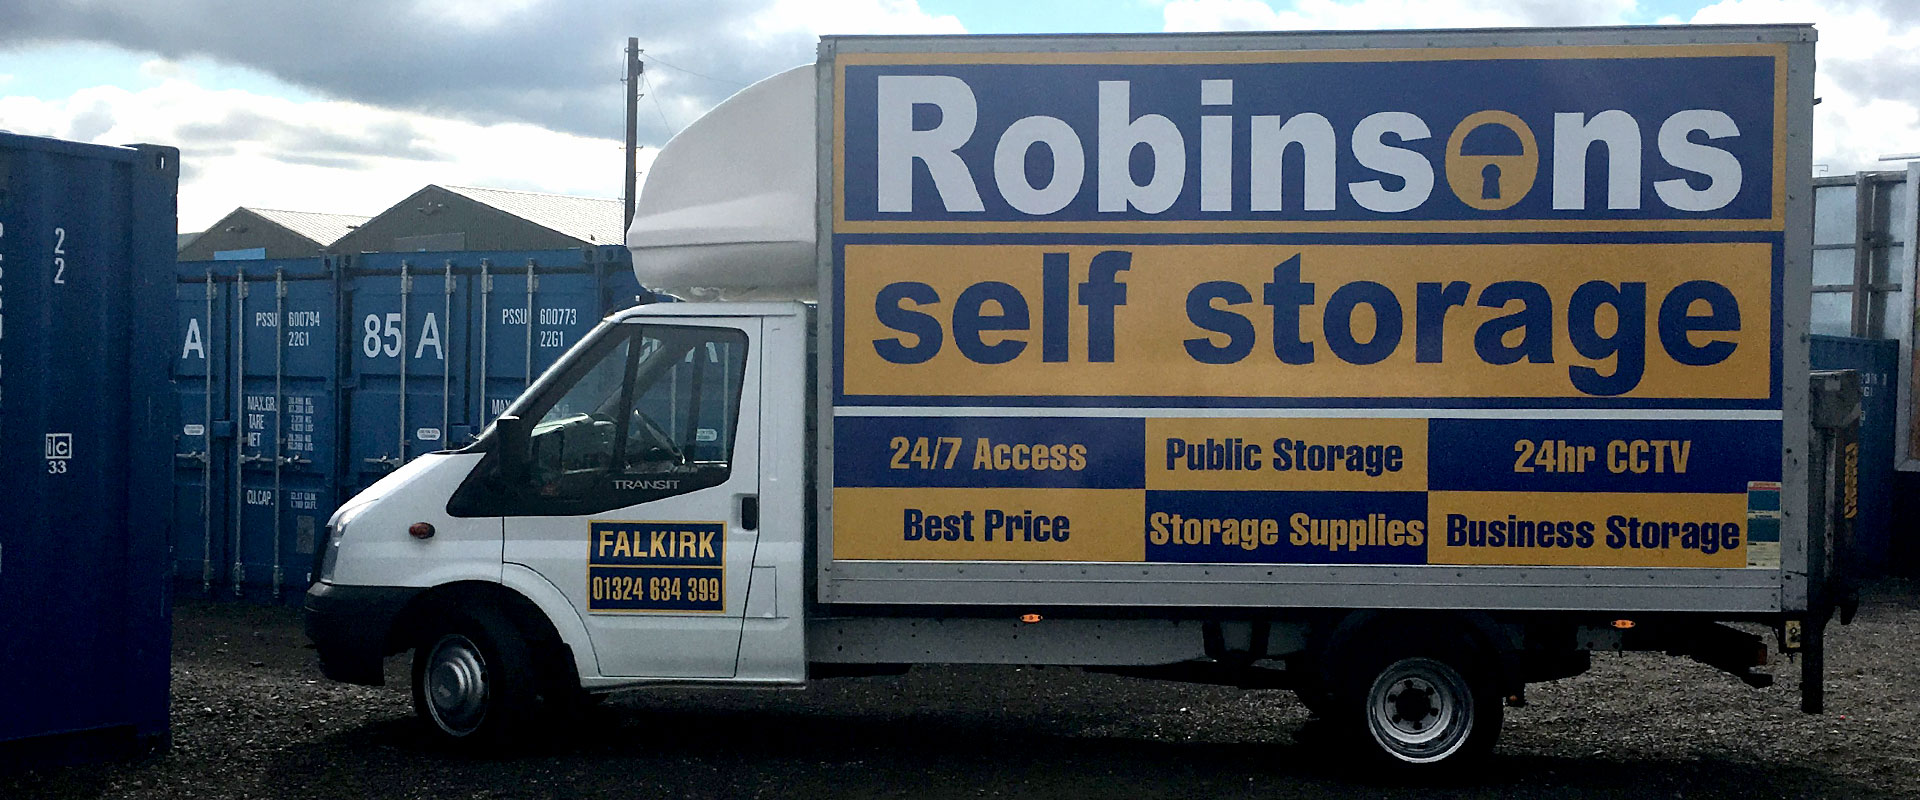 Robinson's Self Storage